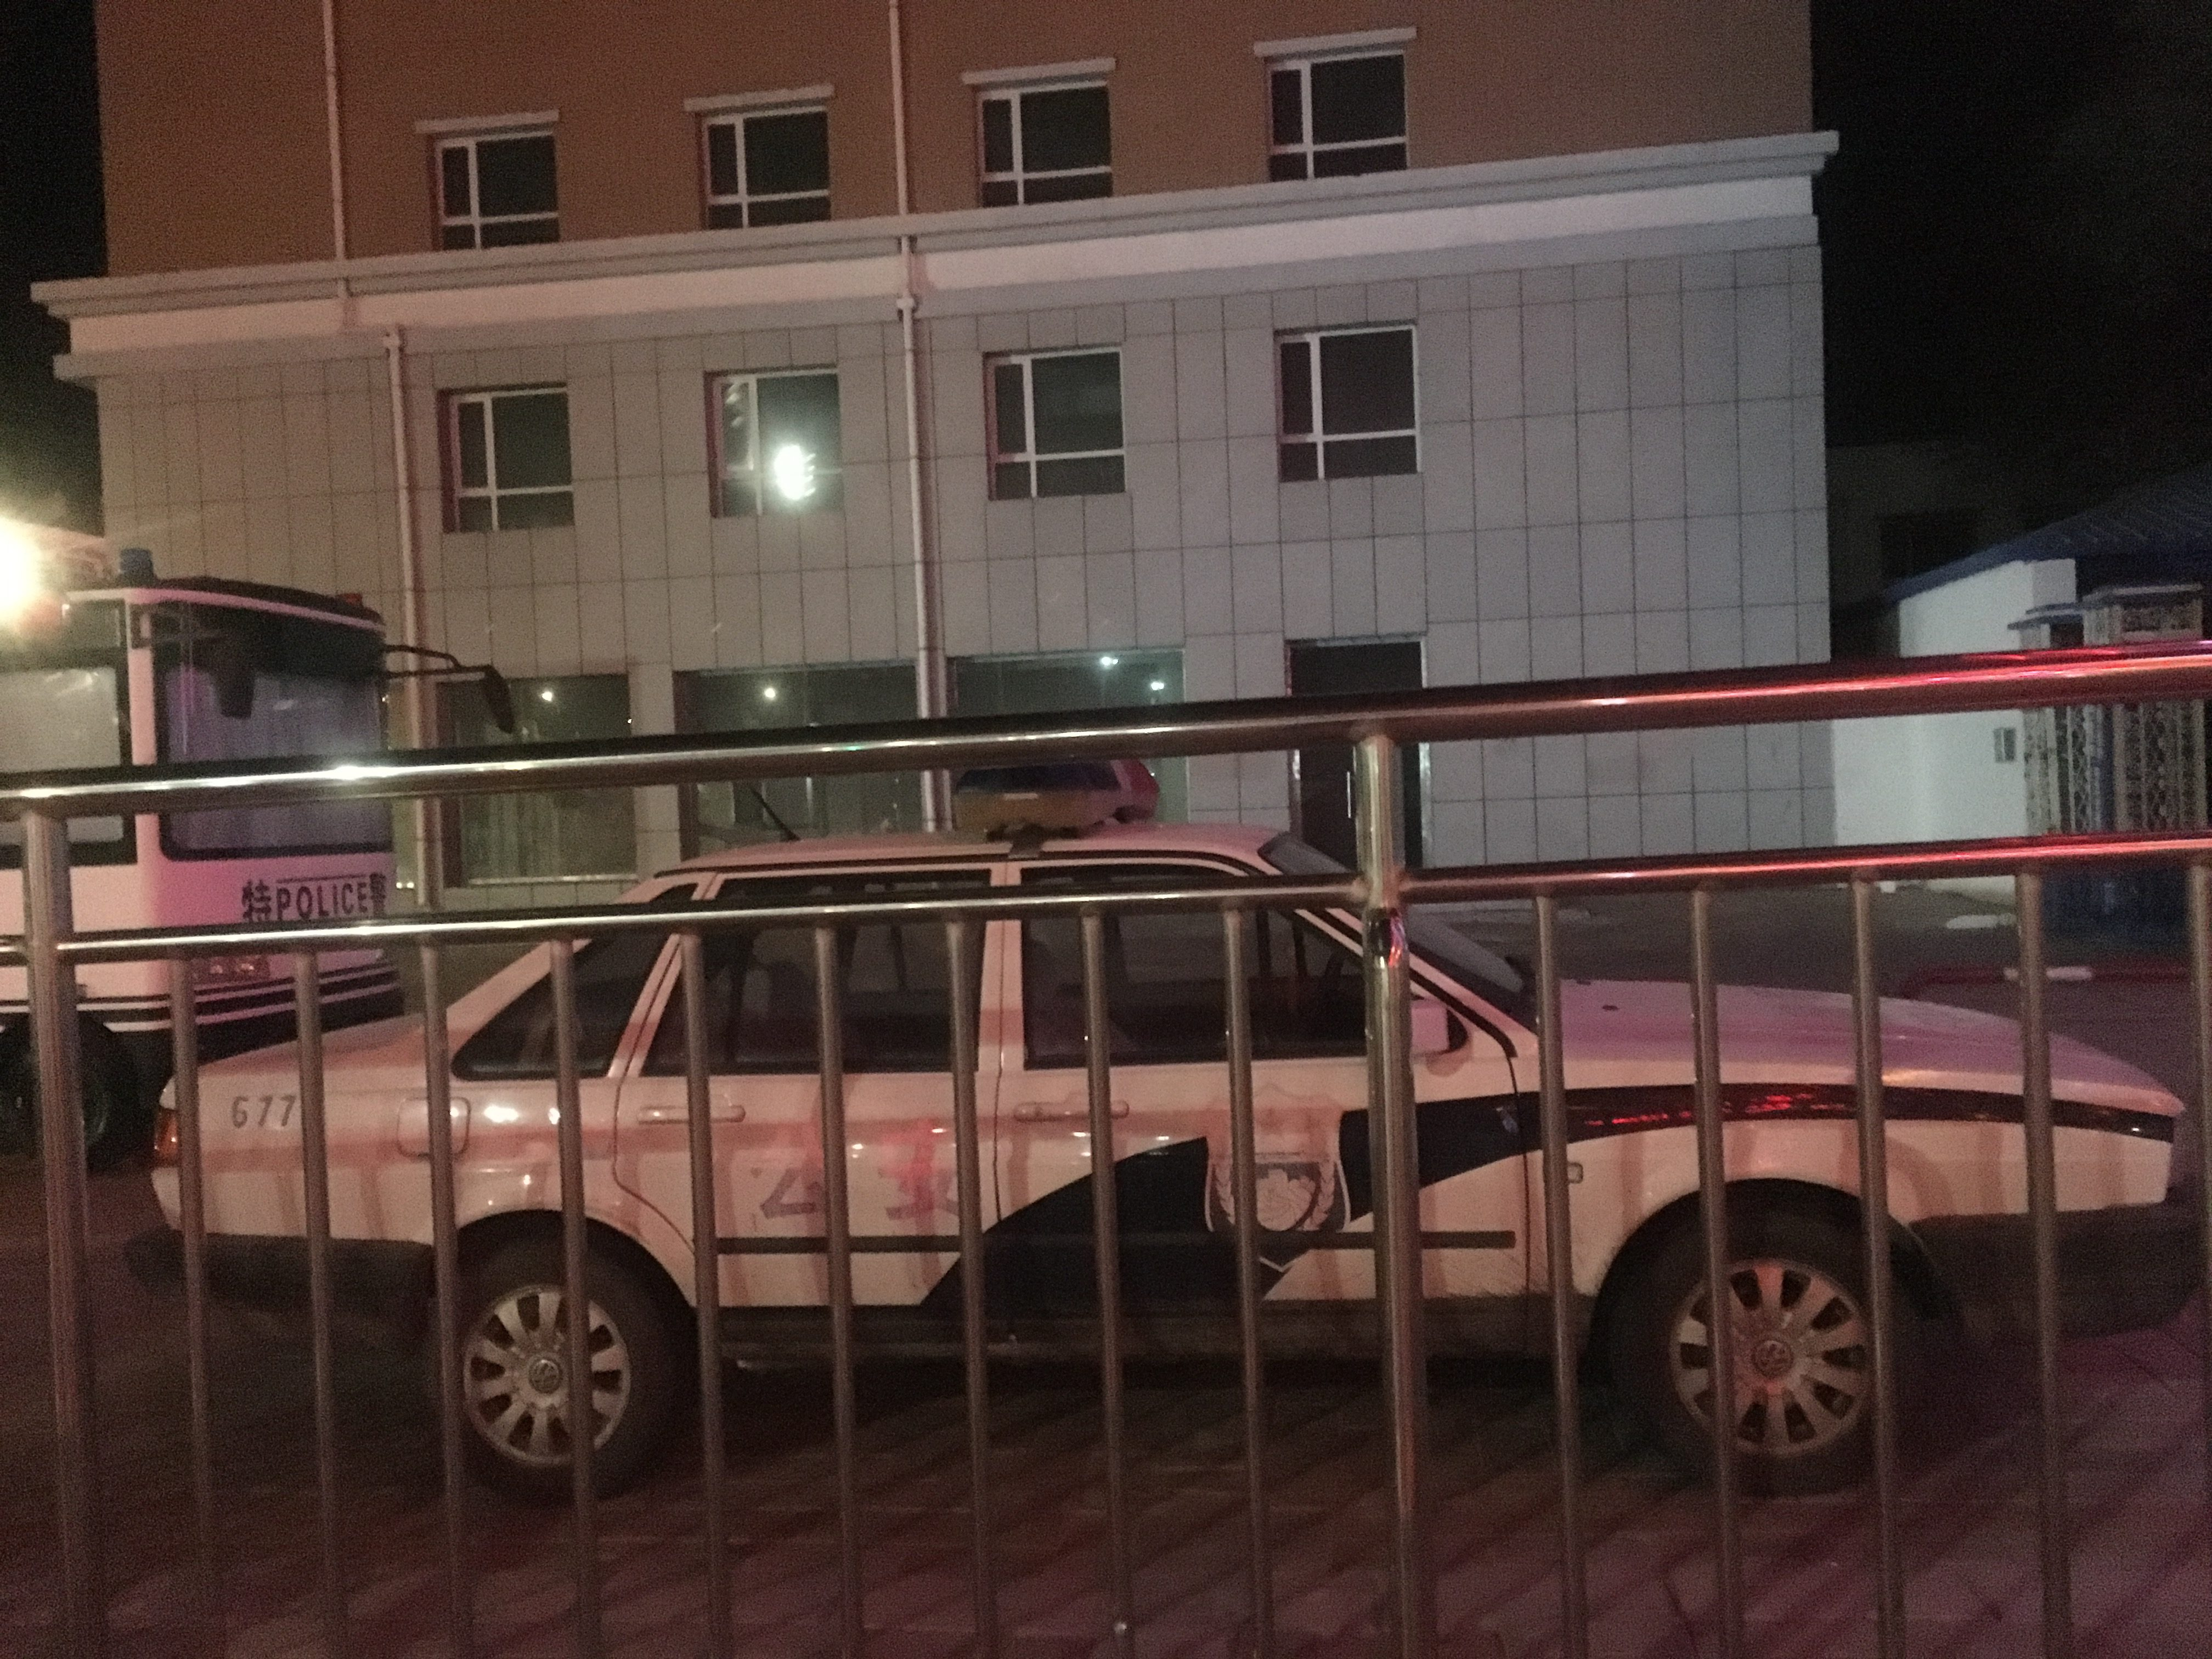 Official Chinese vehicle seen through bars of holding pen